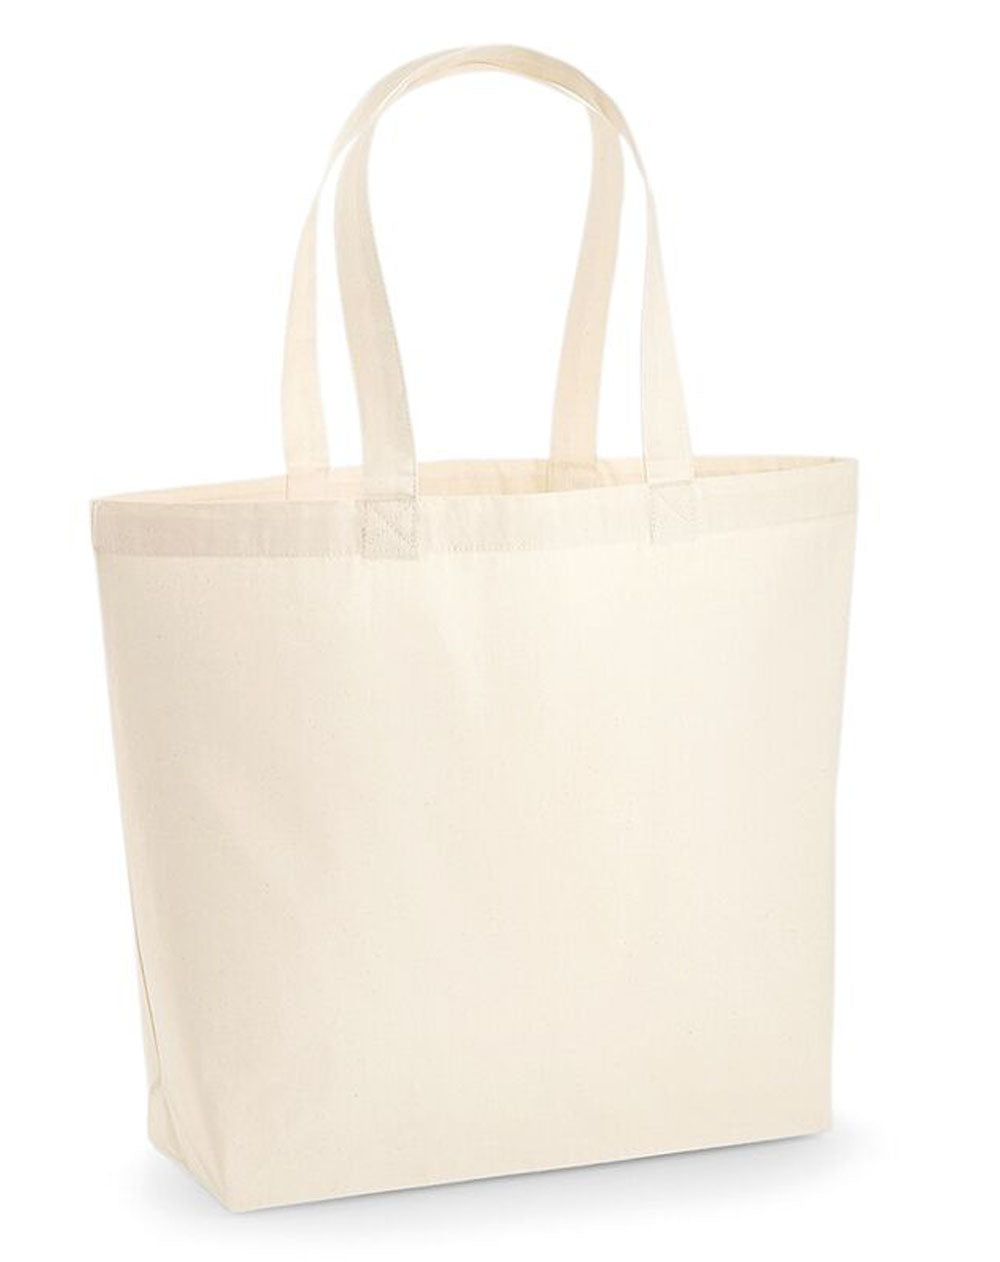 Independent woman lip tote bag in cream